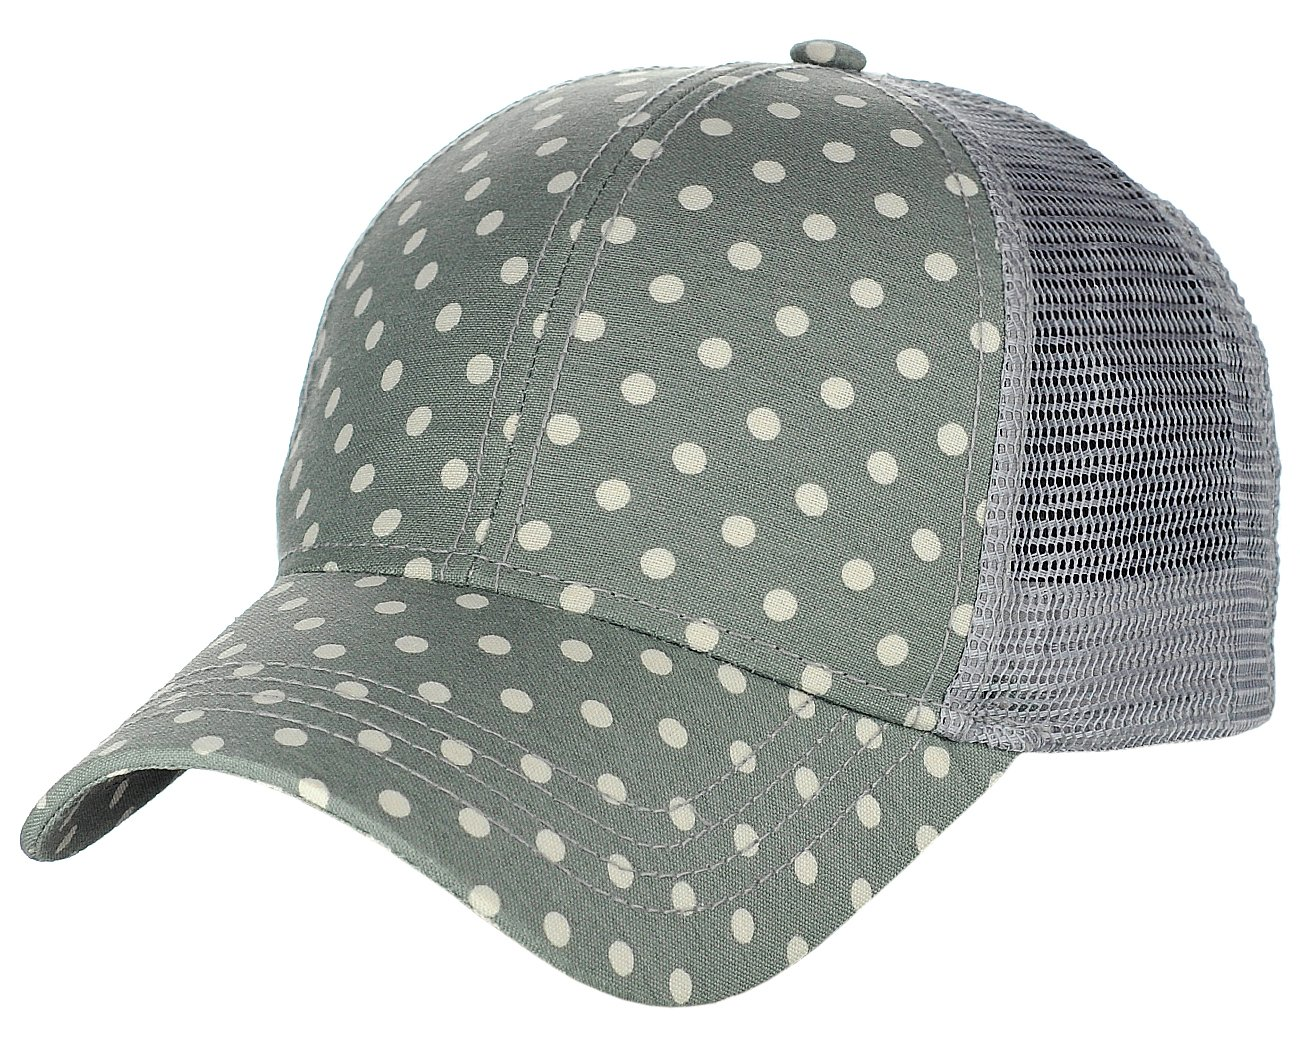 C.C Printed Polka Dotted Pattern Adjustable Mesh Trucker Baseball Cap, Gray